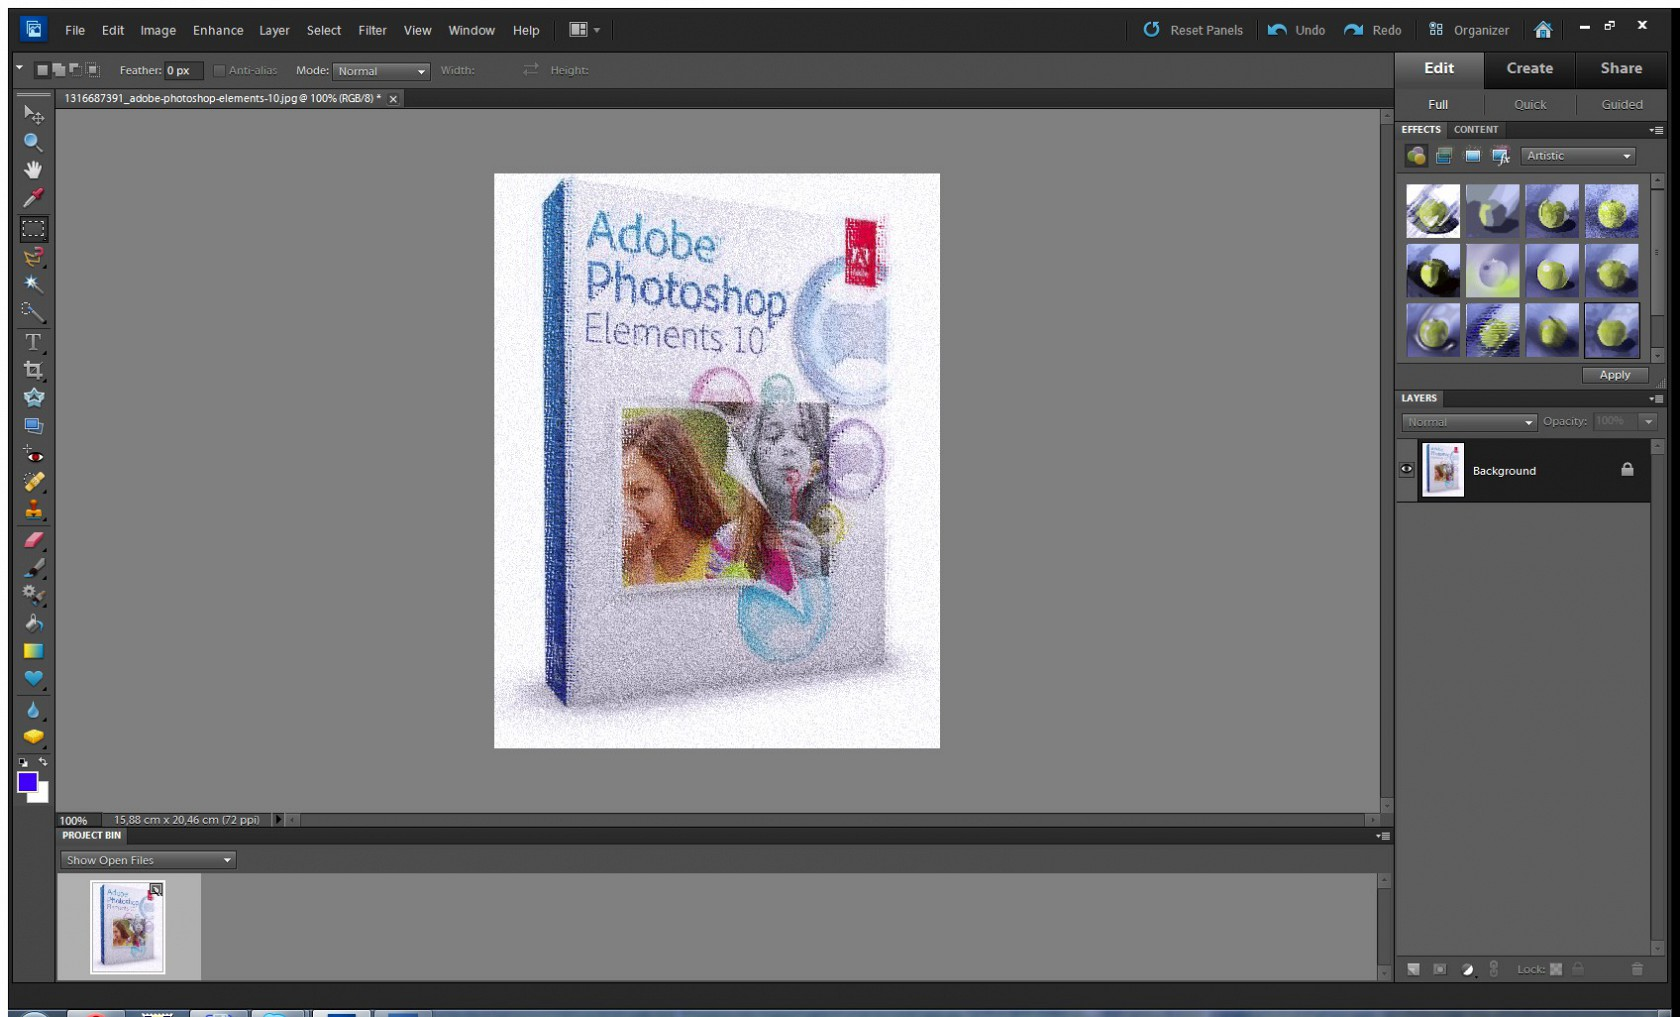 Adobe photoshop elements 10 0 multilingual for windows for mac